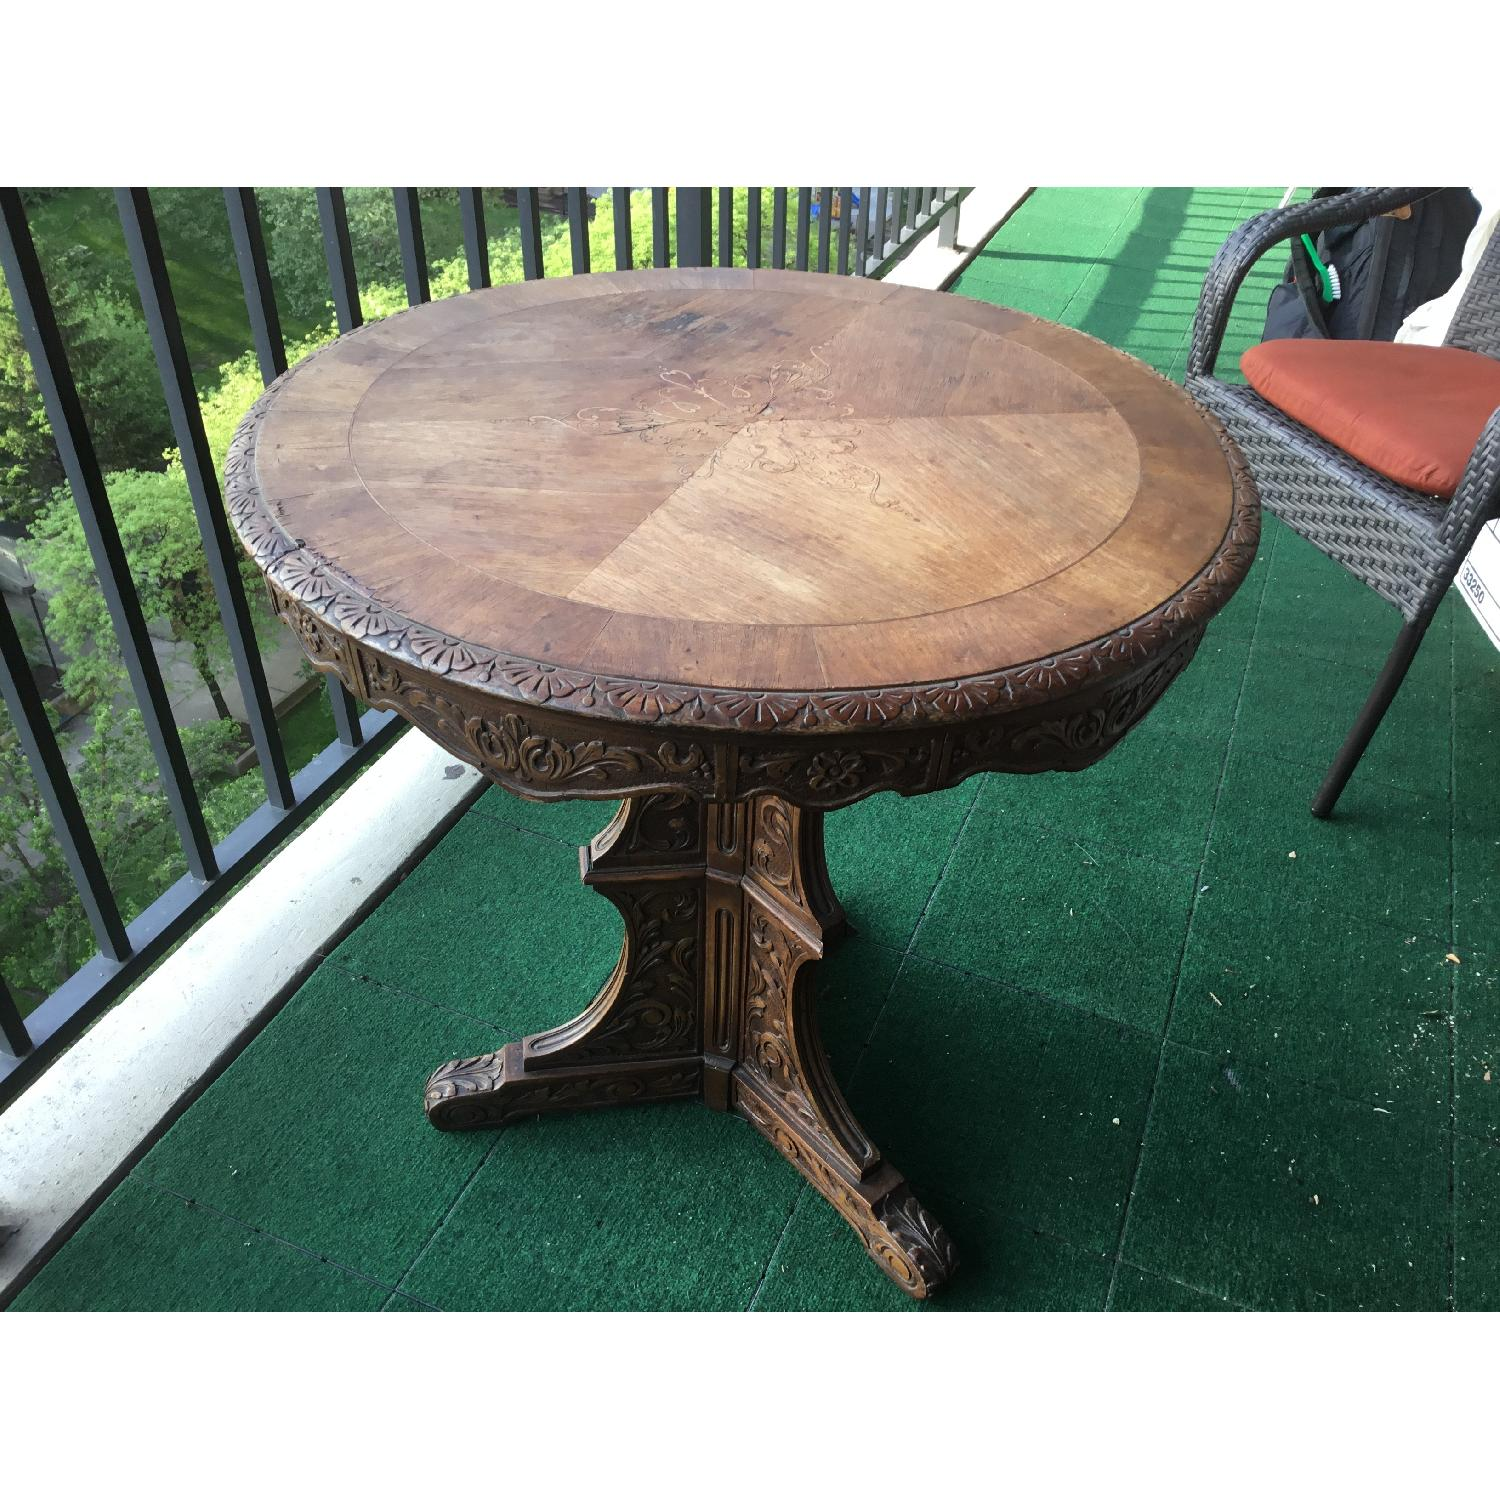 Italian Vintage Carved Wood Baroque Style Round Side Table - image-22